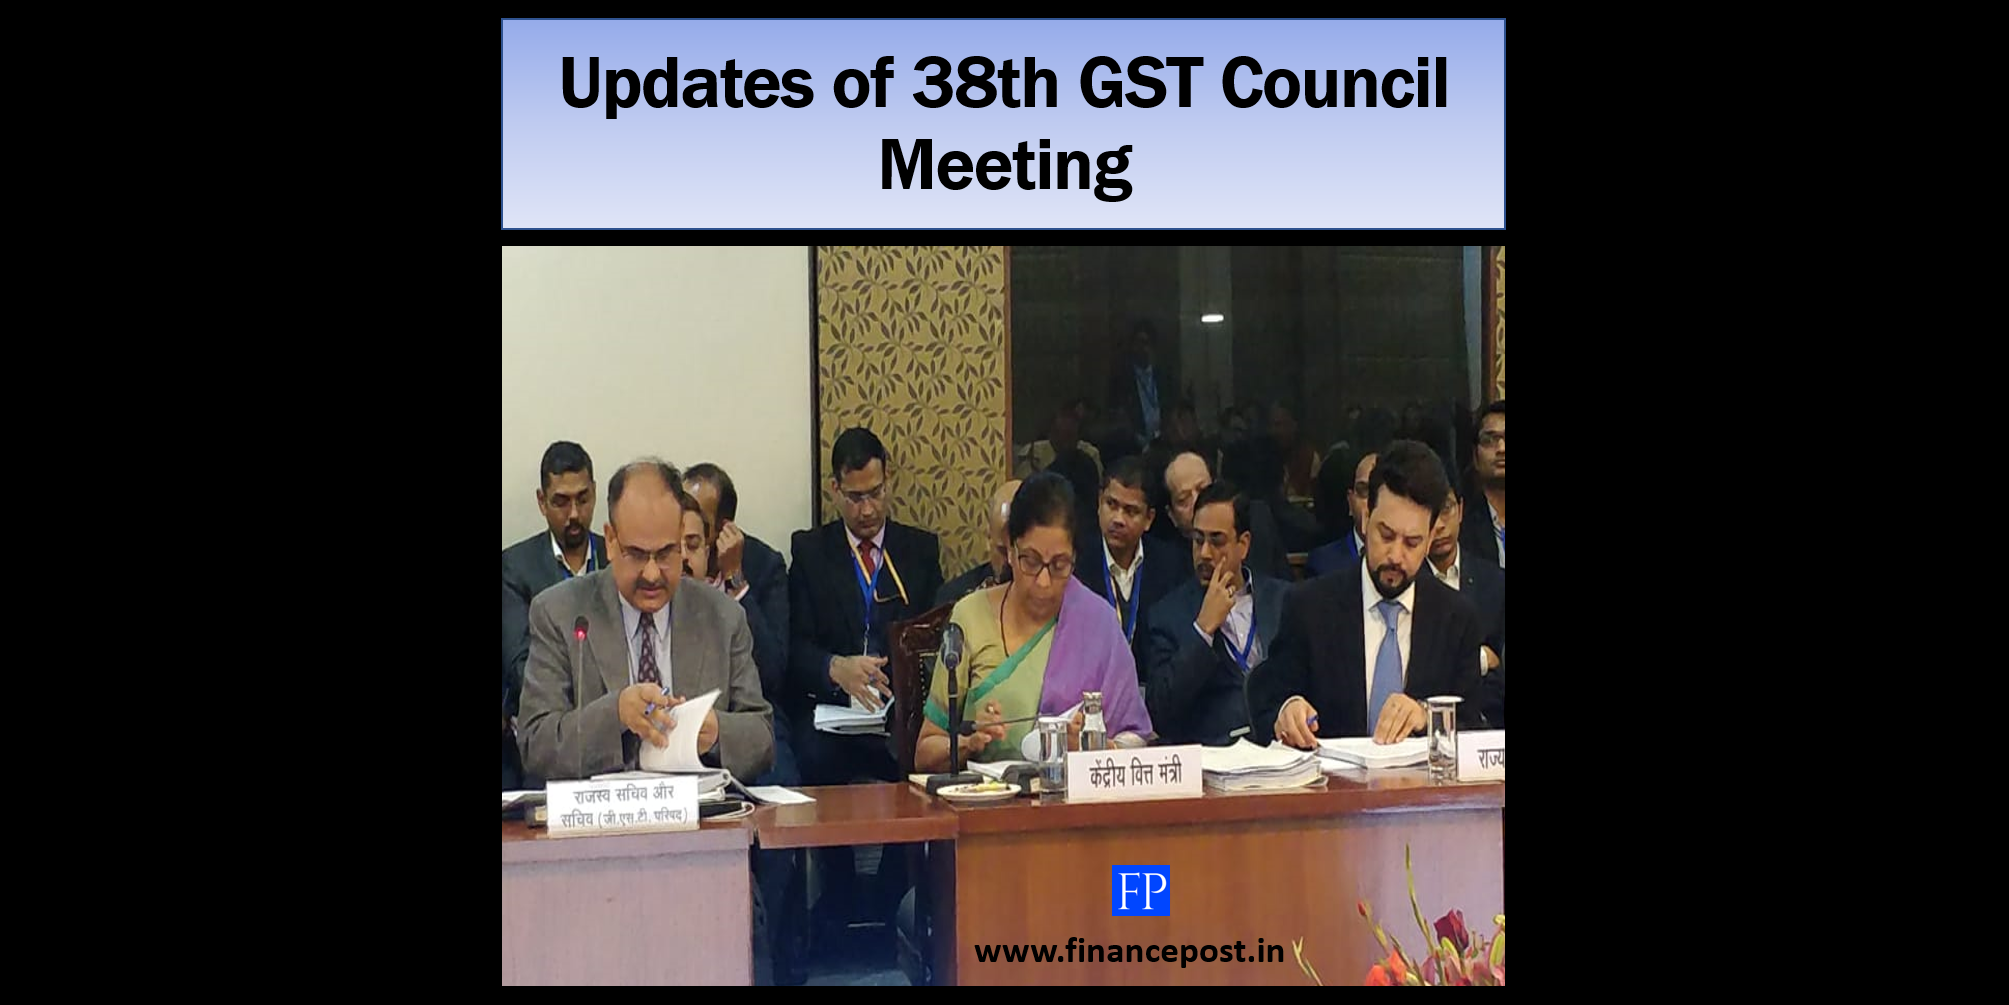 Updates of 38th GST Council Meeting